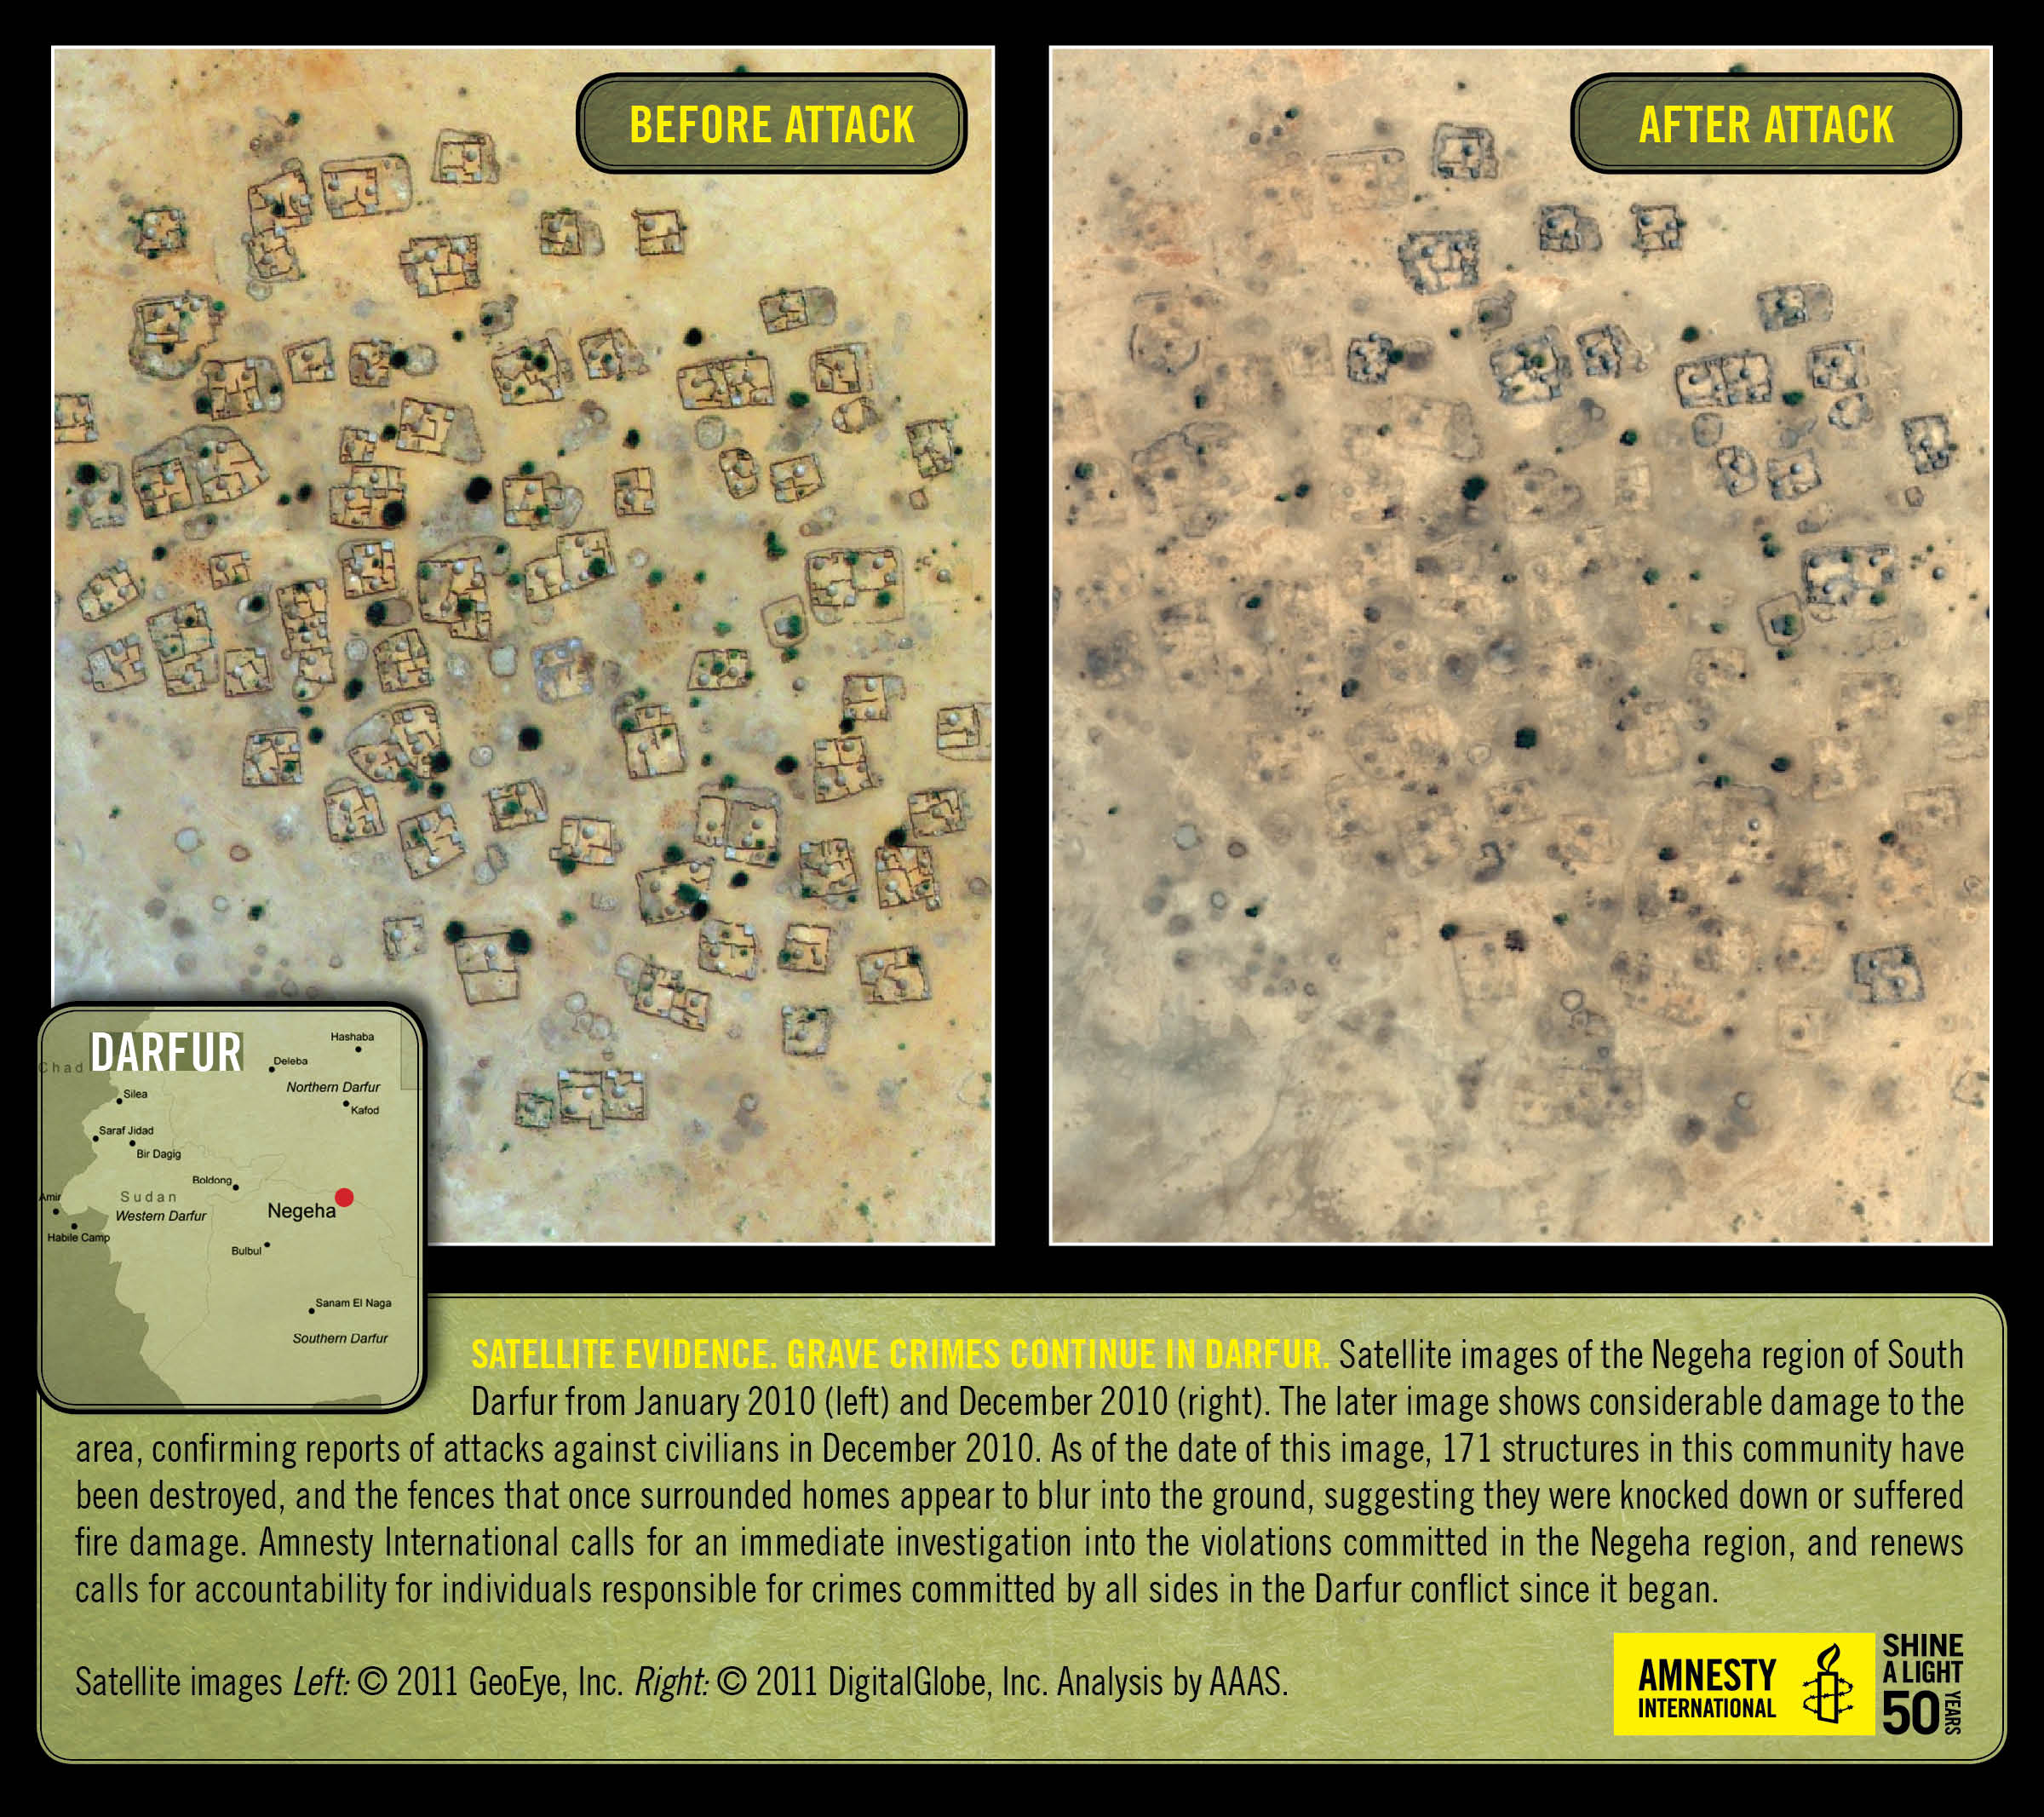 Before and after satellite images of destroyed villages in Darfur